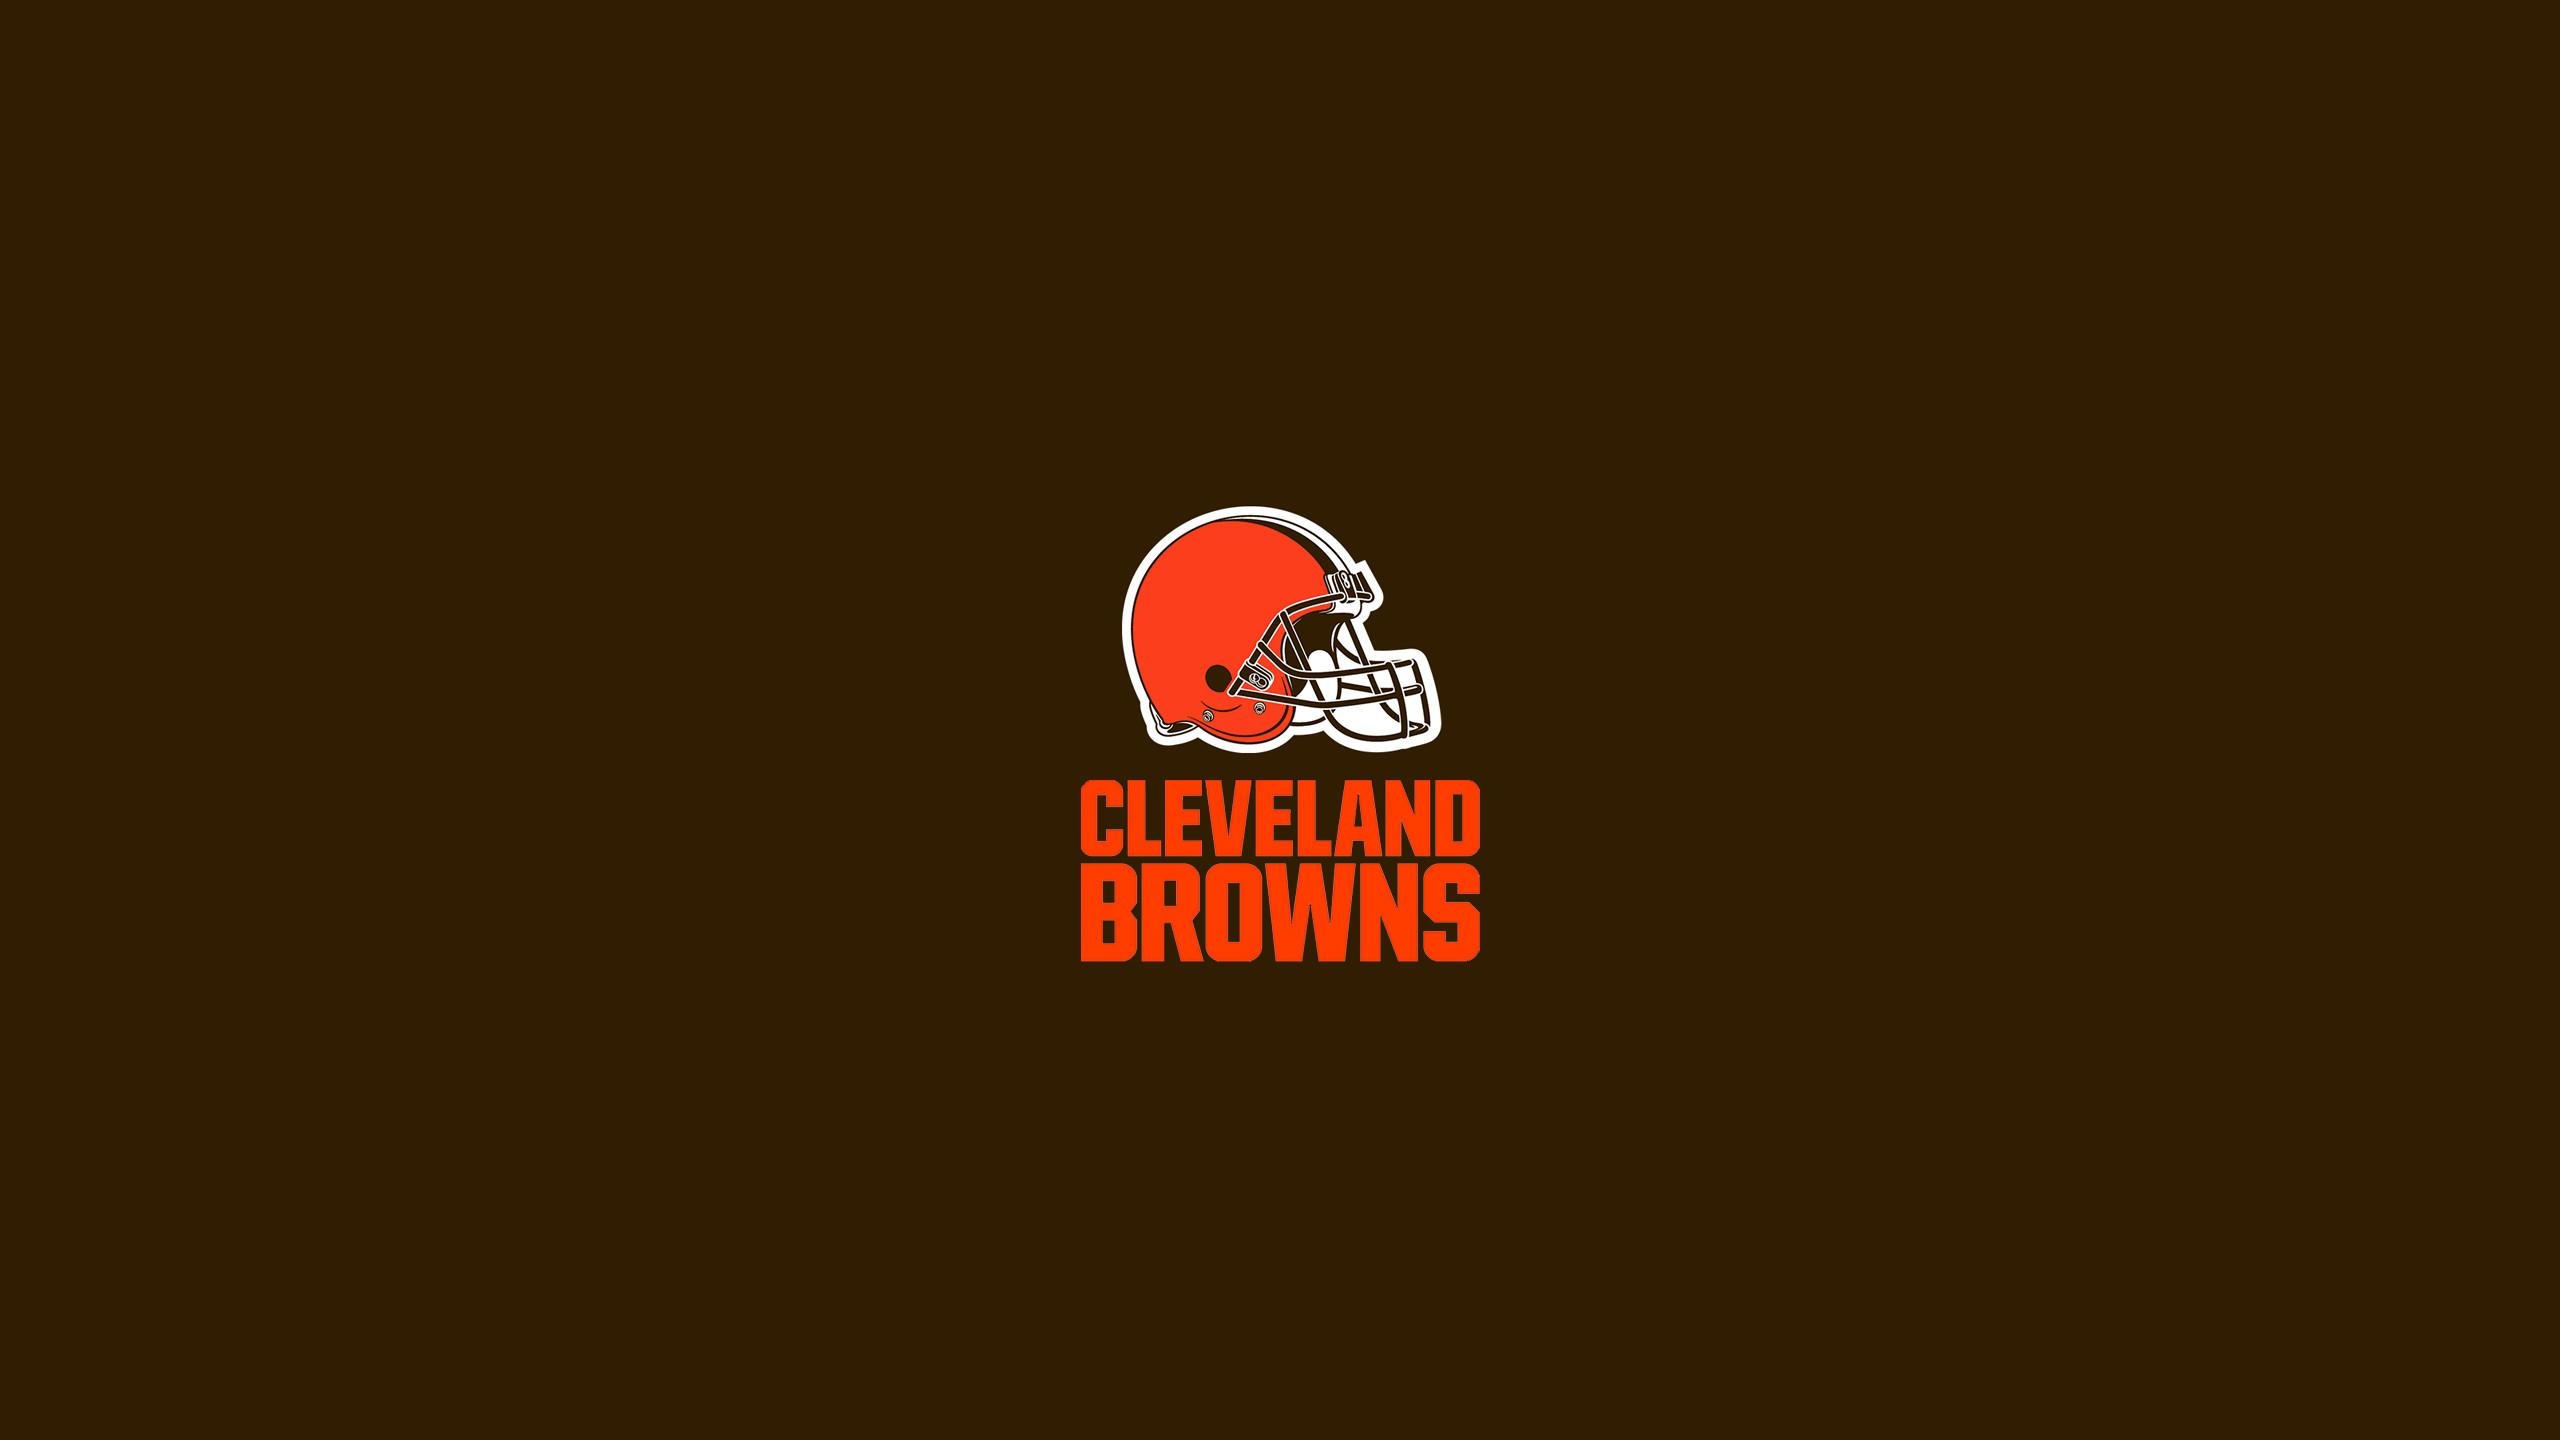 Cleveland Browns Wallpaper (53+), Download 4K Wallpapers For Free